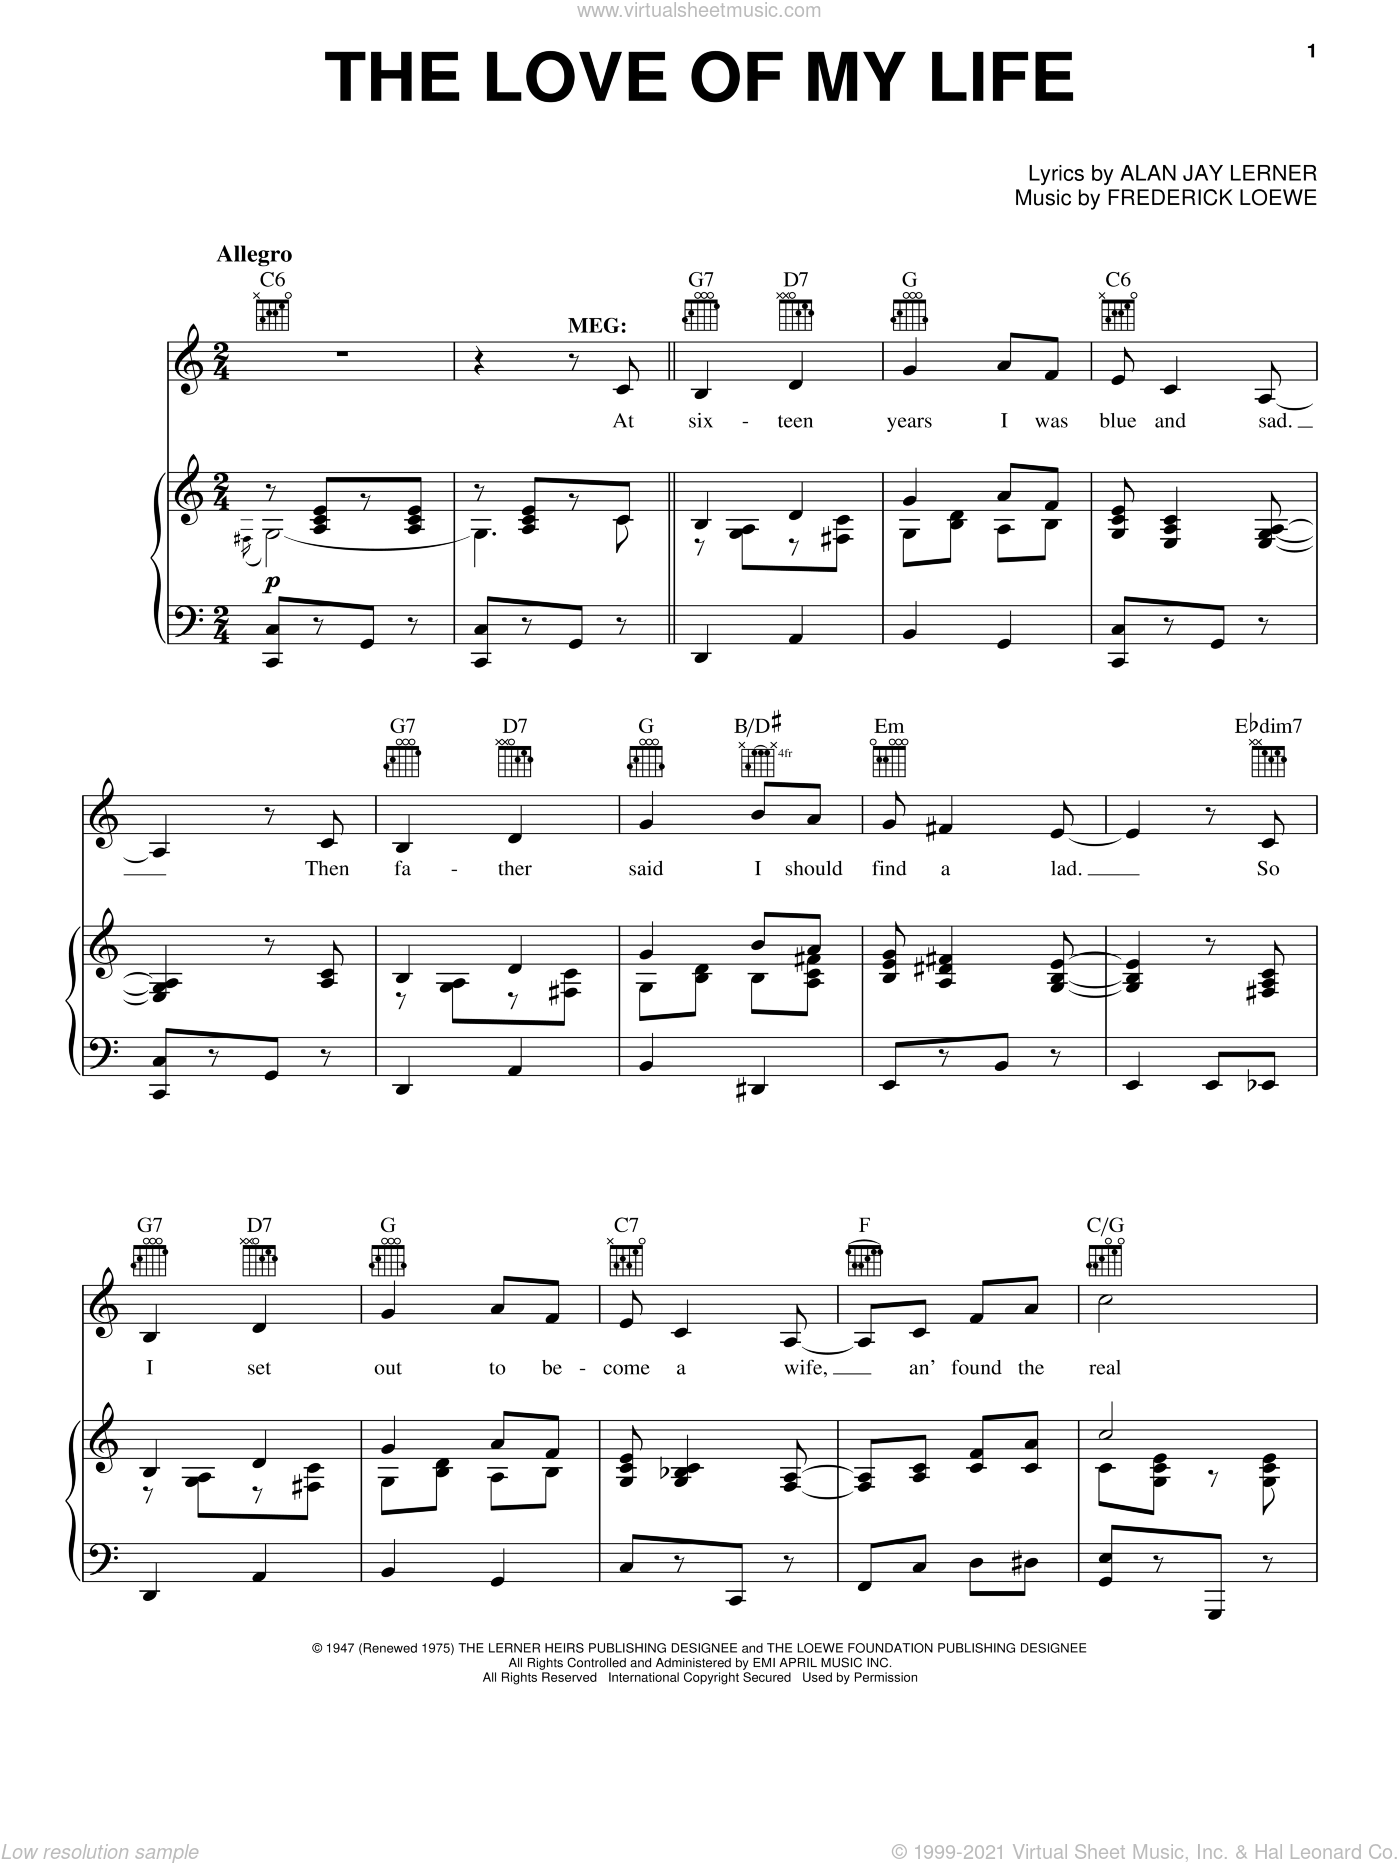 The Love Of My Life sheet music for voice, piano or guitar by Lerner & Loewe, Alan Jay Lerner and Frederick Loewe, intermediate voice, piano or guitar. Score Image Preview.